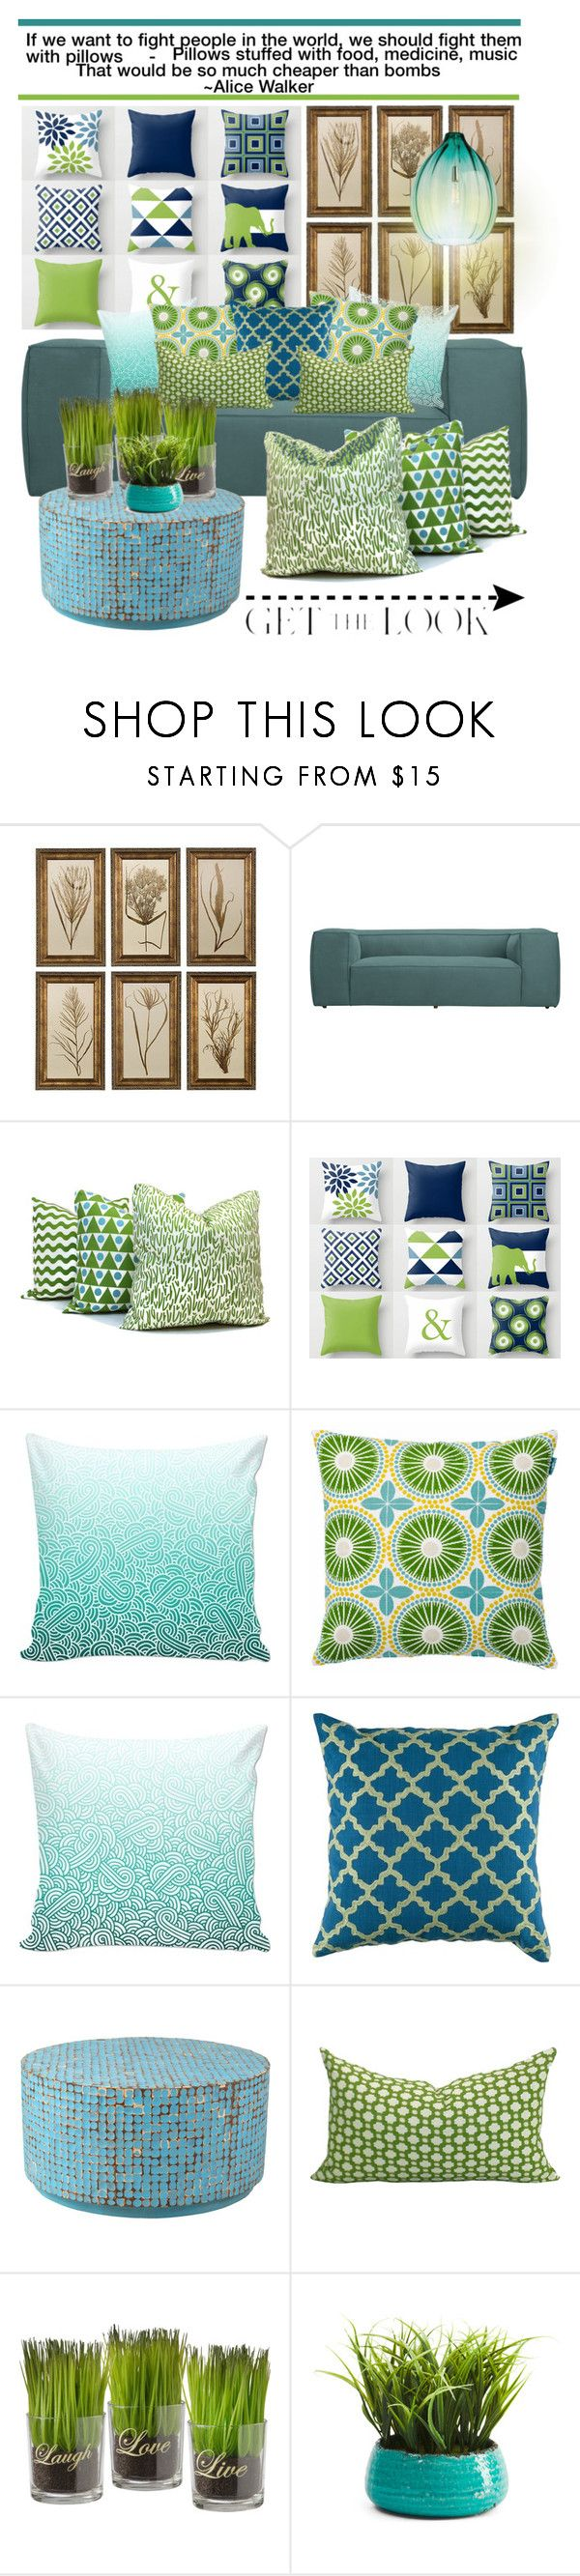 """""""Pillow Fight"""" by rehtaeh69 ❤ liked on Polyvore featuring interior, interiors, interior design, home, home decor, interior decorating, East at Main and Tech Lighting"""